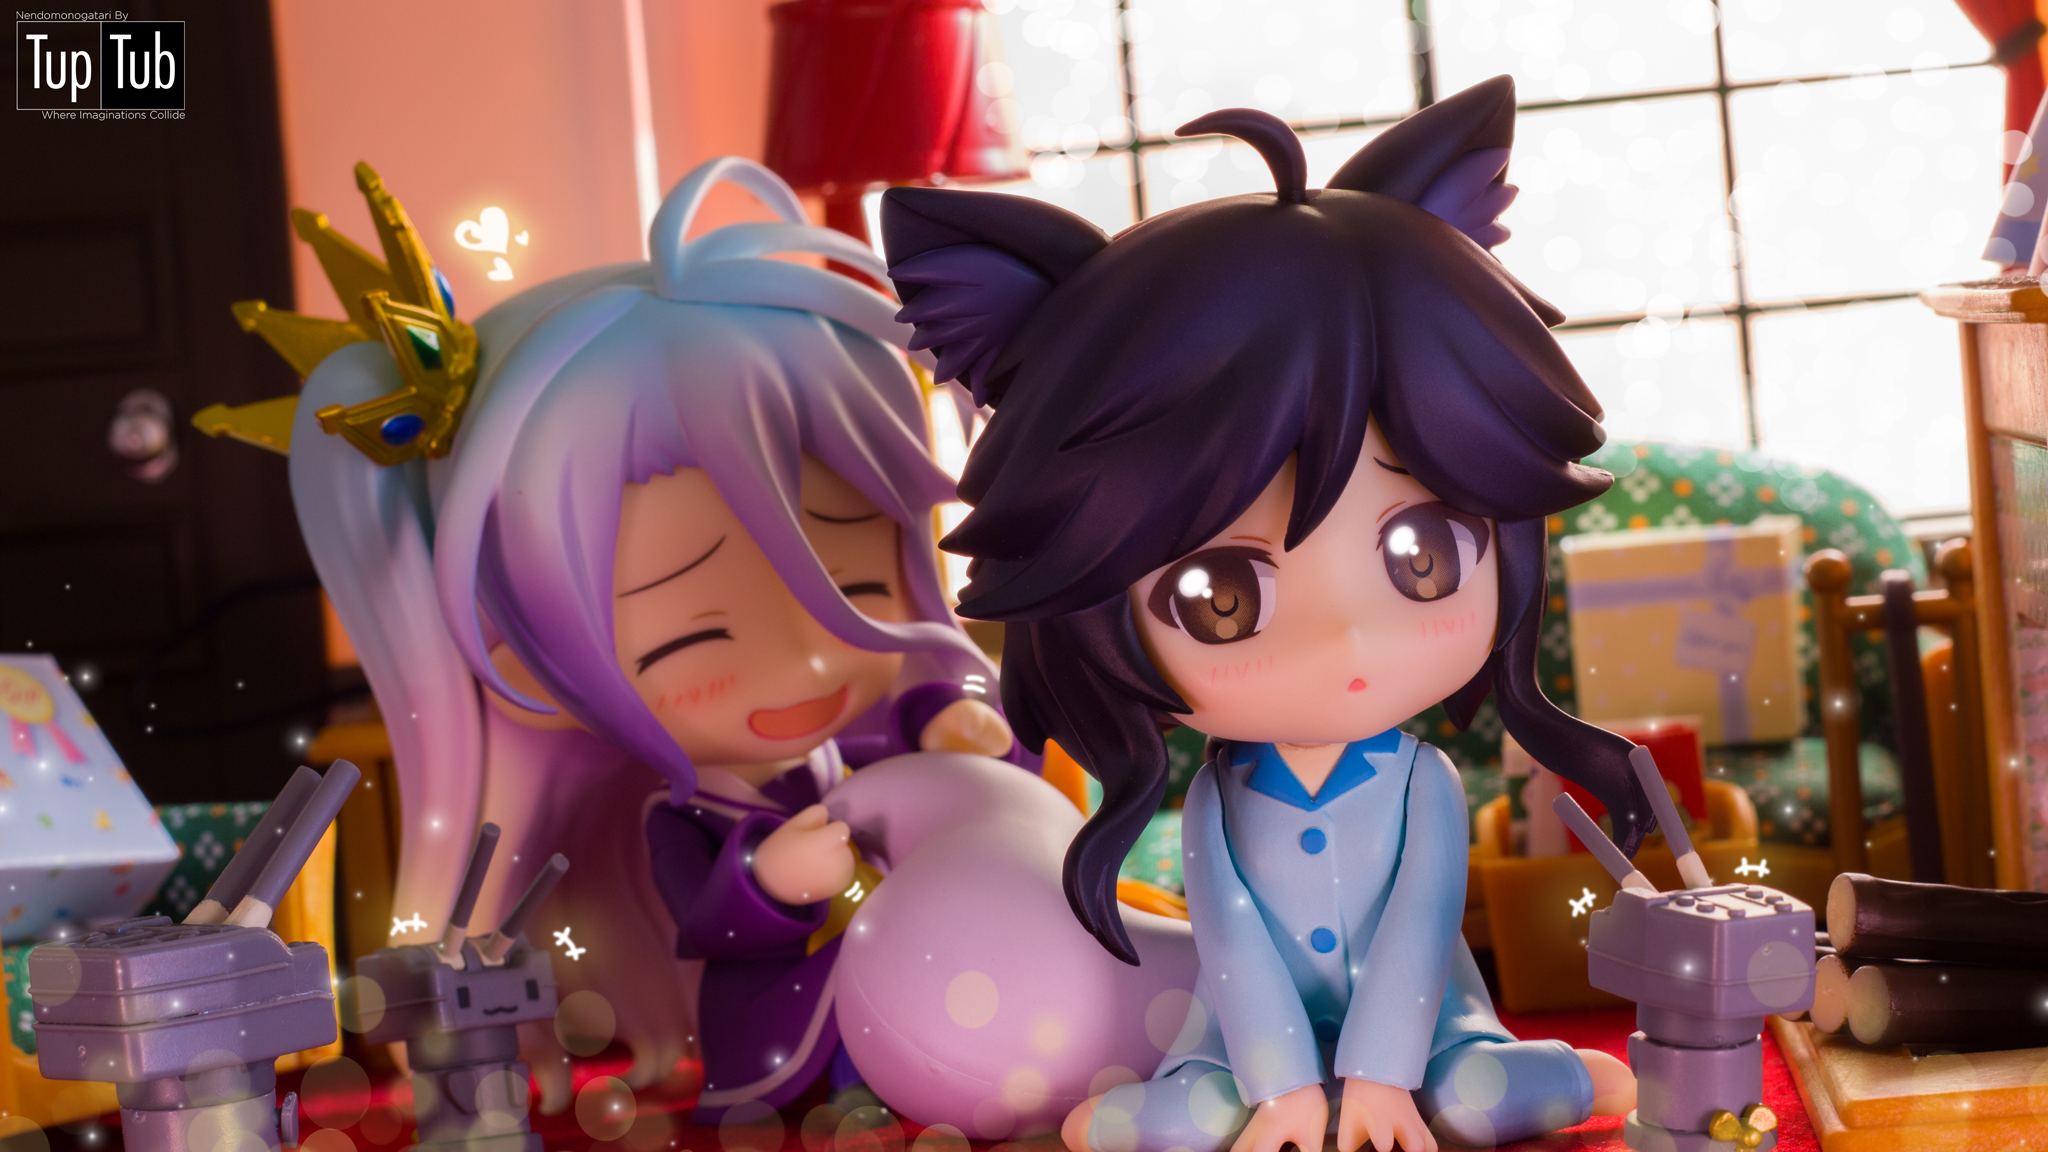 nendoroid good_smile_company shiro nendoron udono_kazuyoshi media_factory kamiya_yuu league_of_legends shichibee no_game_no_life ahri riot_games